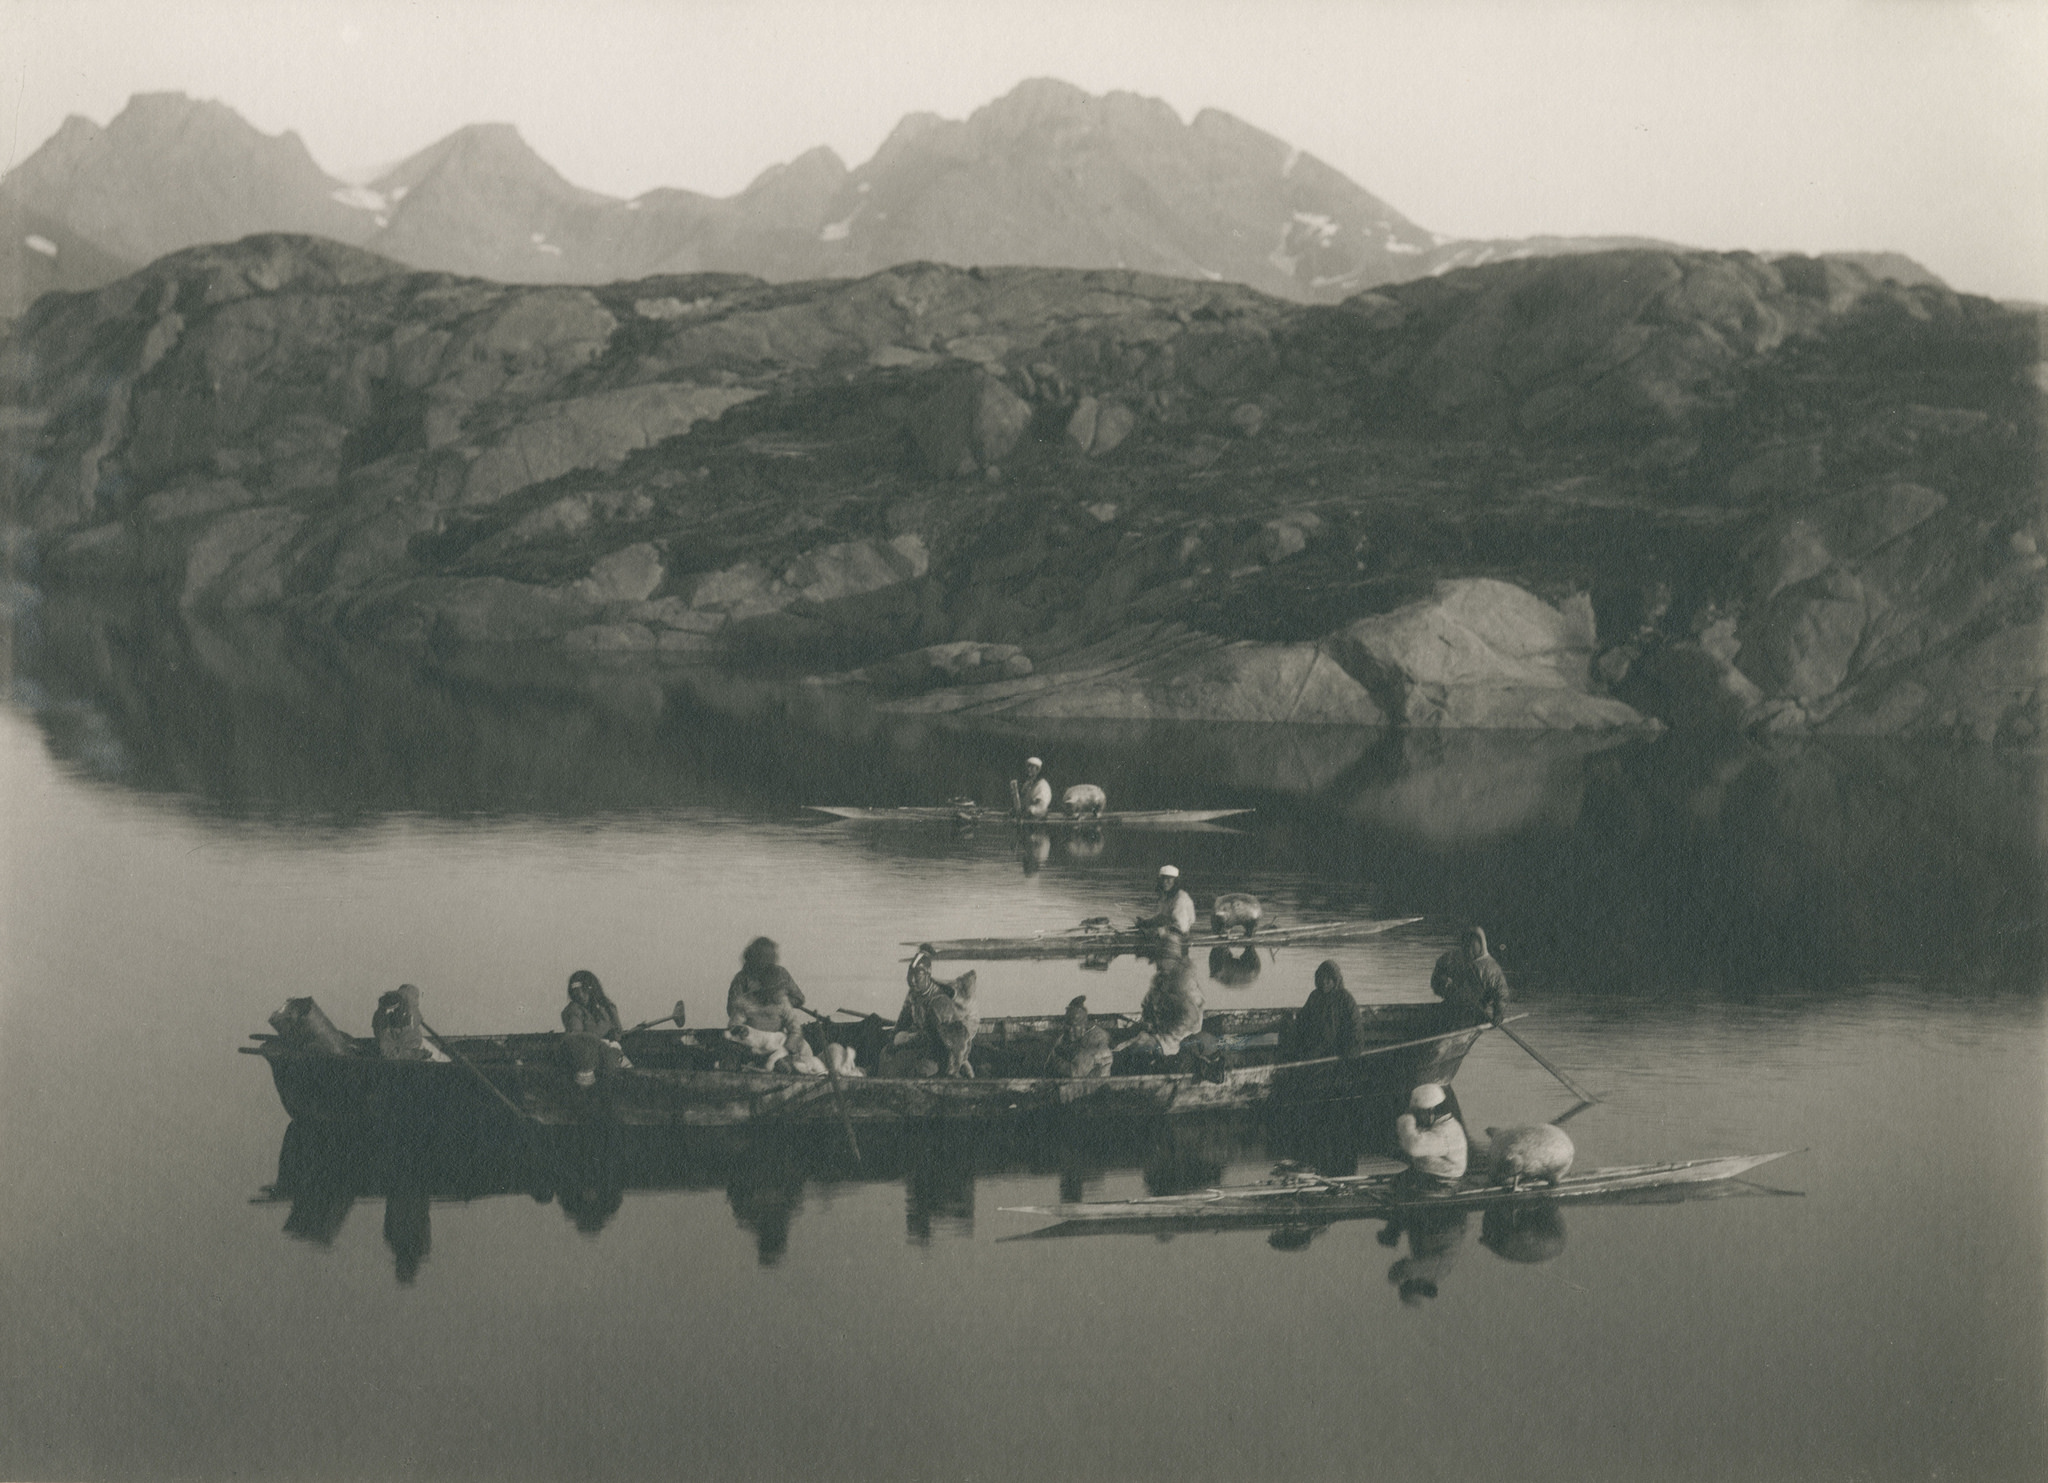 Inuit tribes kayaking